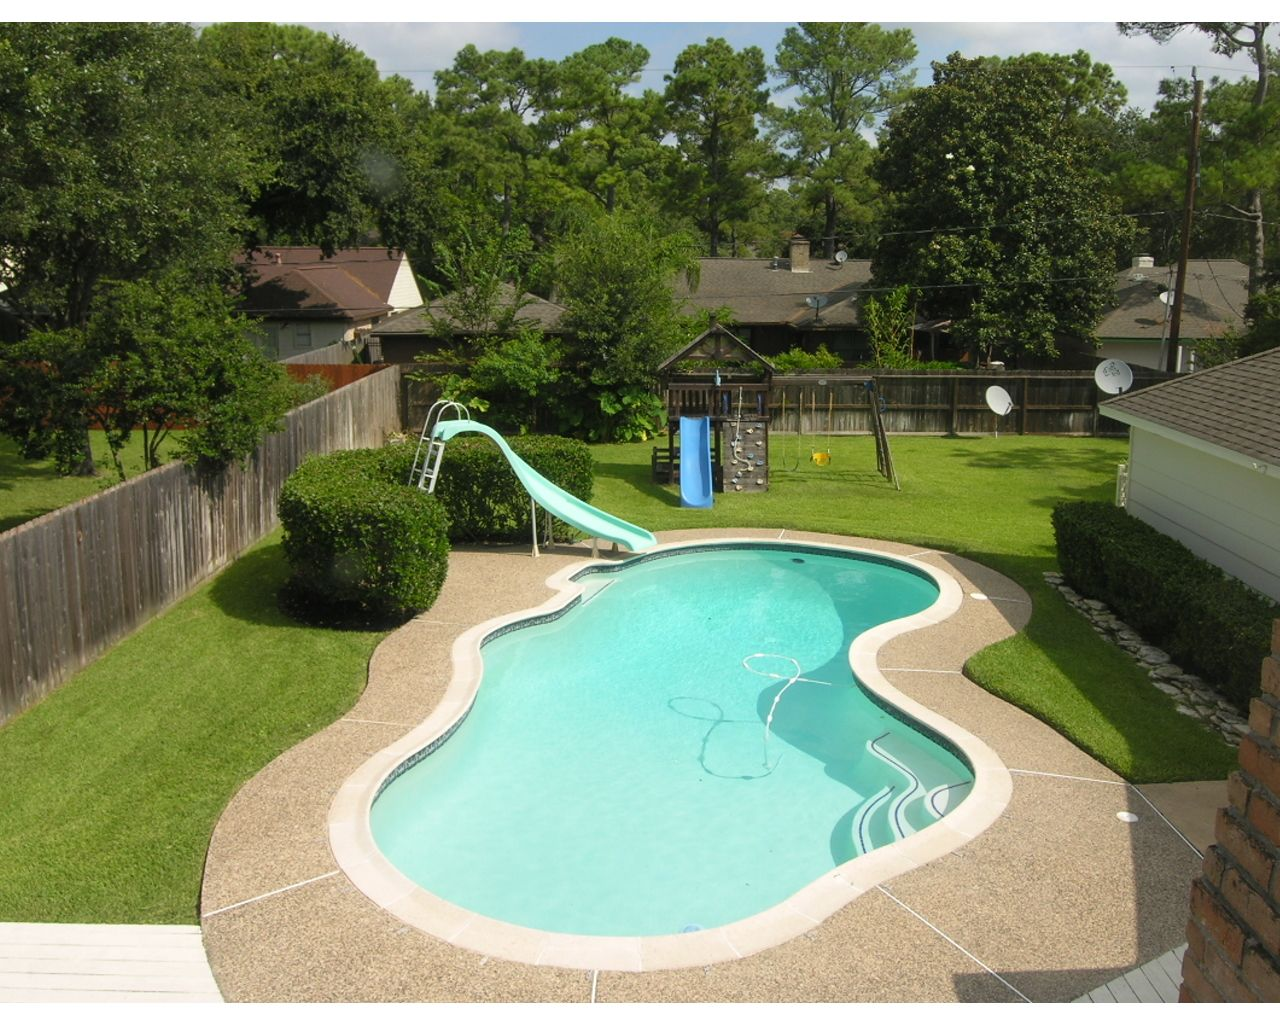 Backyard pools great view of large backyard pool but for Swimming pool ideas for backyard